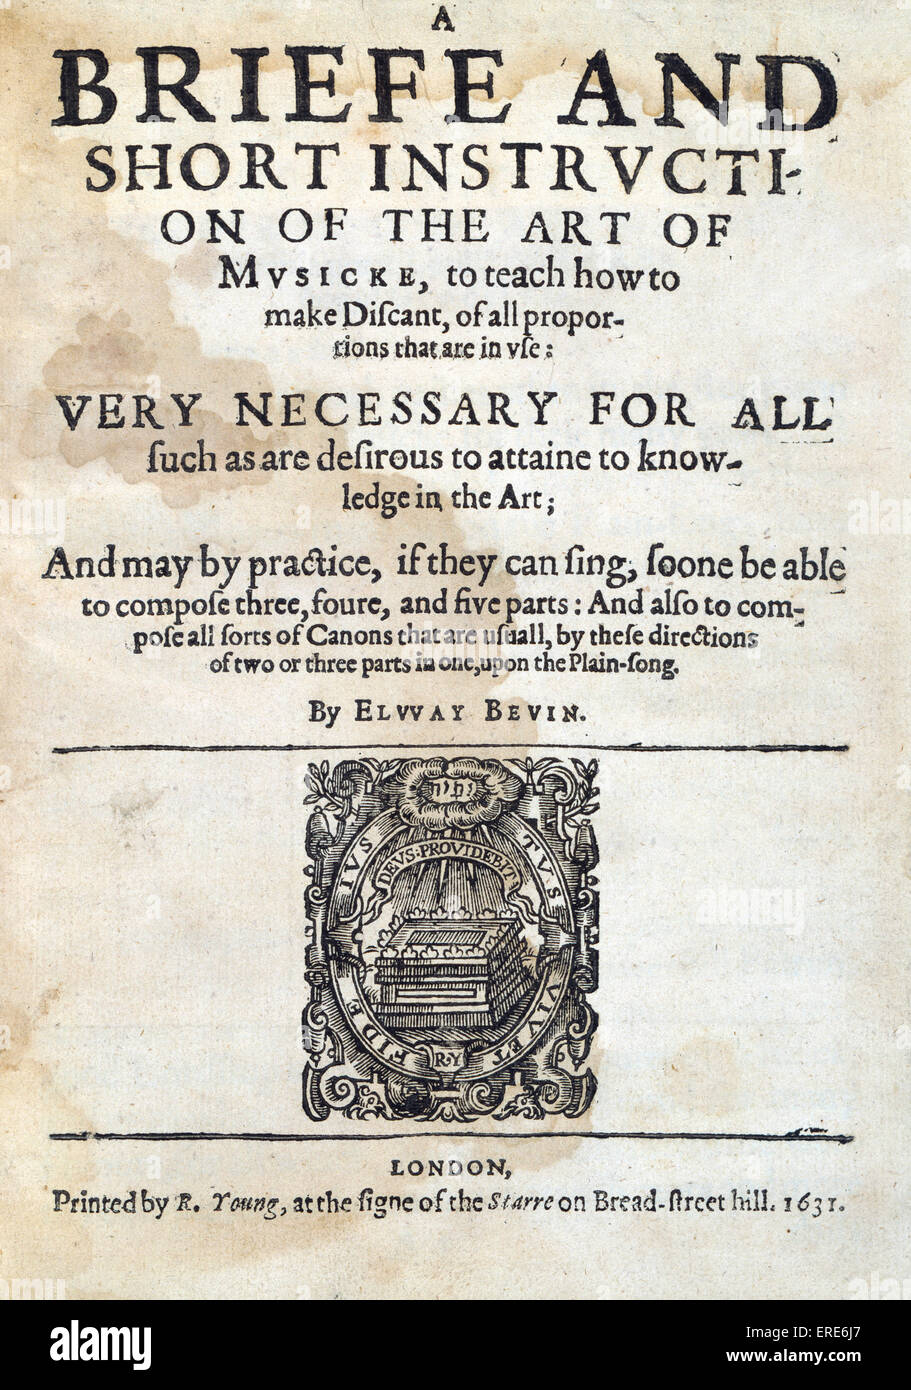 A Briefe and Short Instruction on the Art of Musicke by Elway Bevin, 1631, first edition. Engraved titlepage. - Stock Image